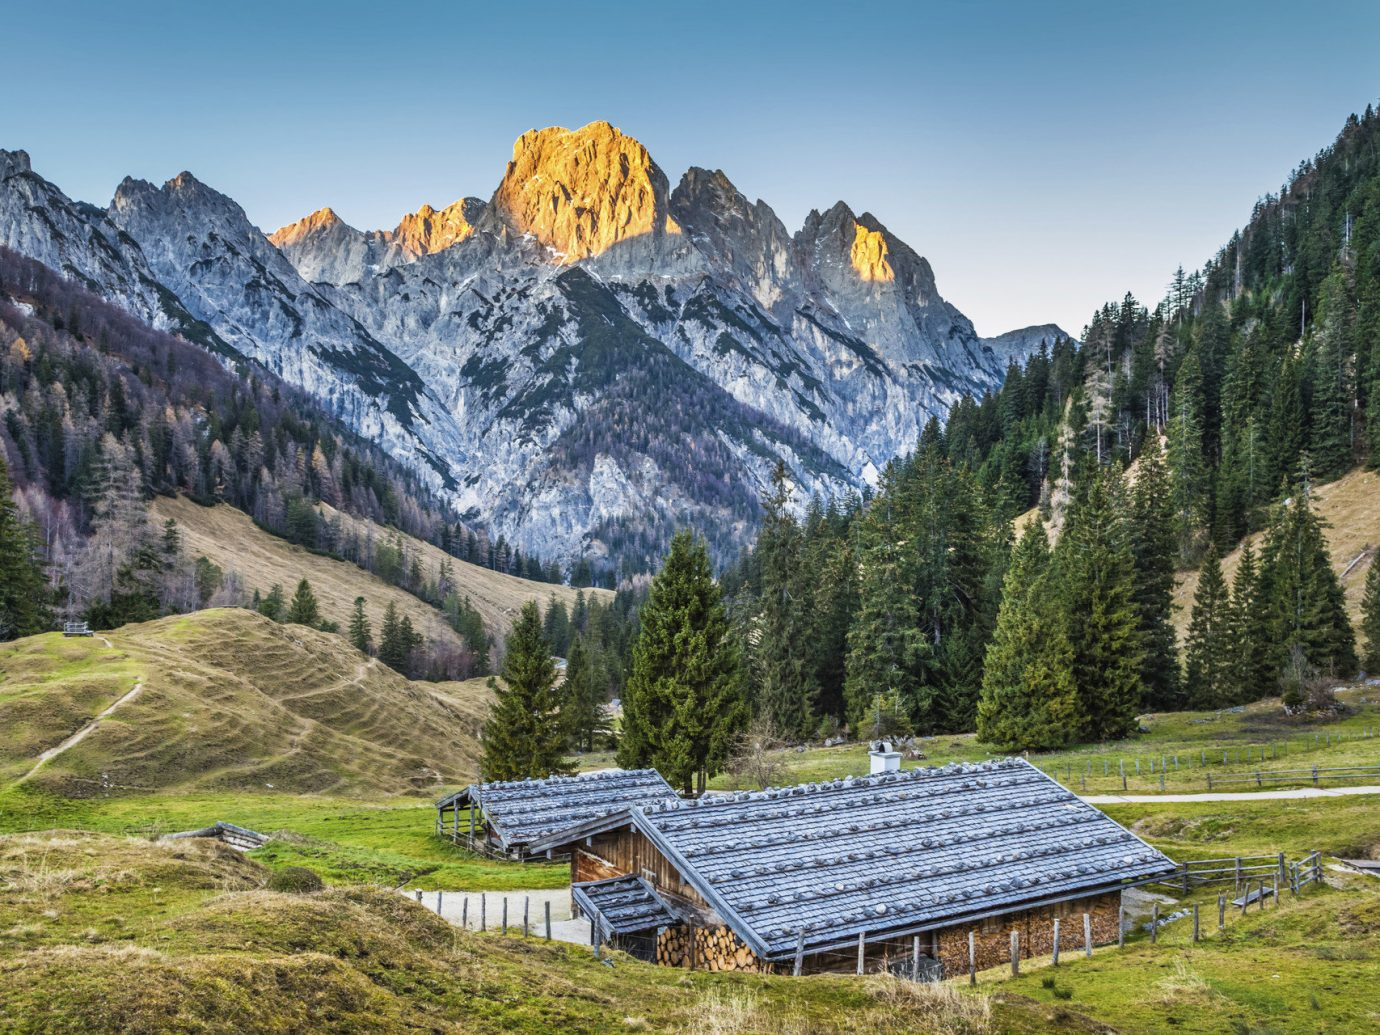 Travel Tips grass sky outdoor mountain mountainous landforms mountain range Nature landform wilderness geographical feature alps ridge valley mountain pass hill landscape plateau meadow park backpacking national park hillside lush highland